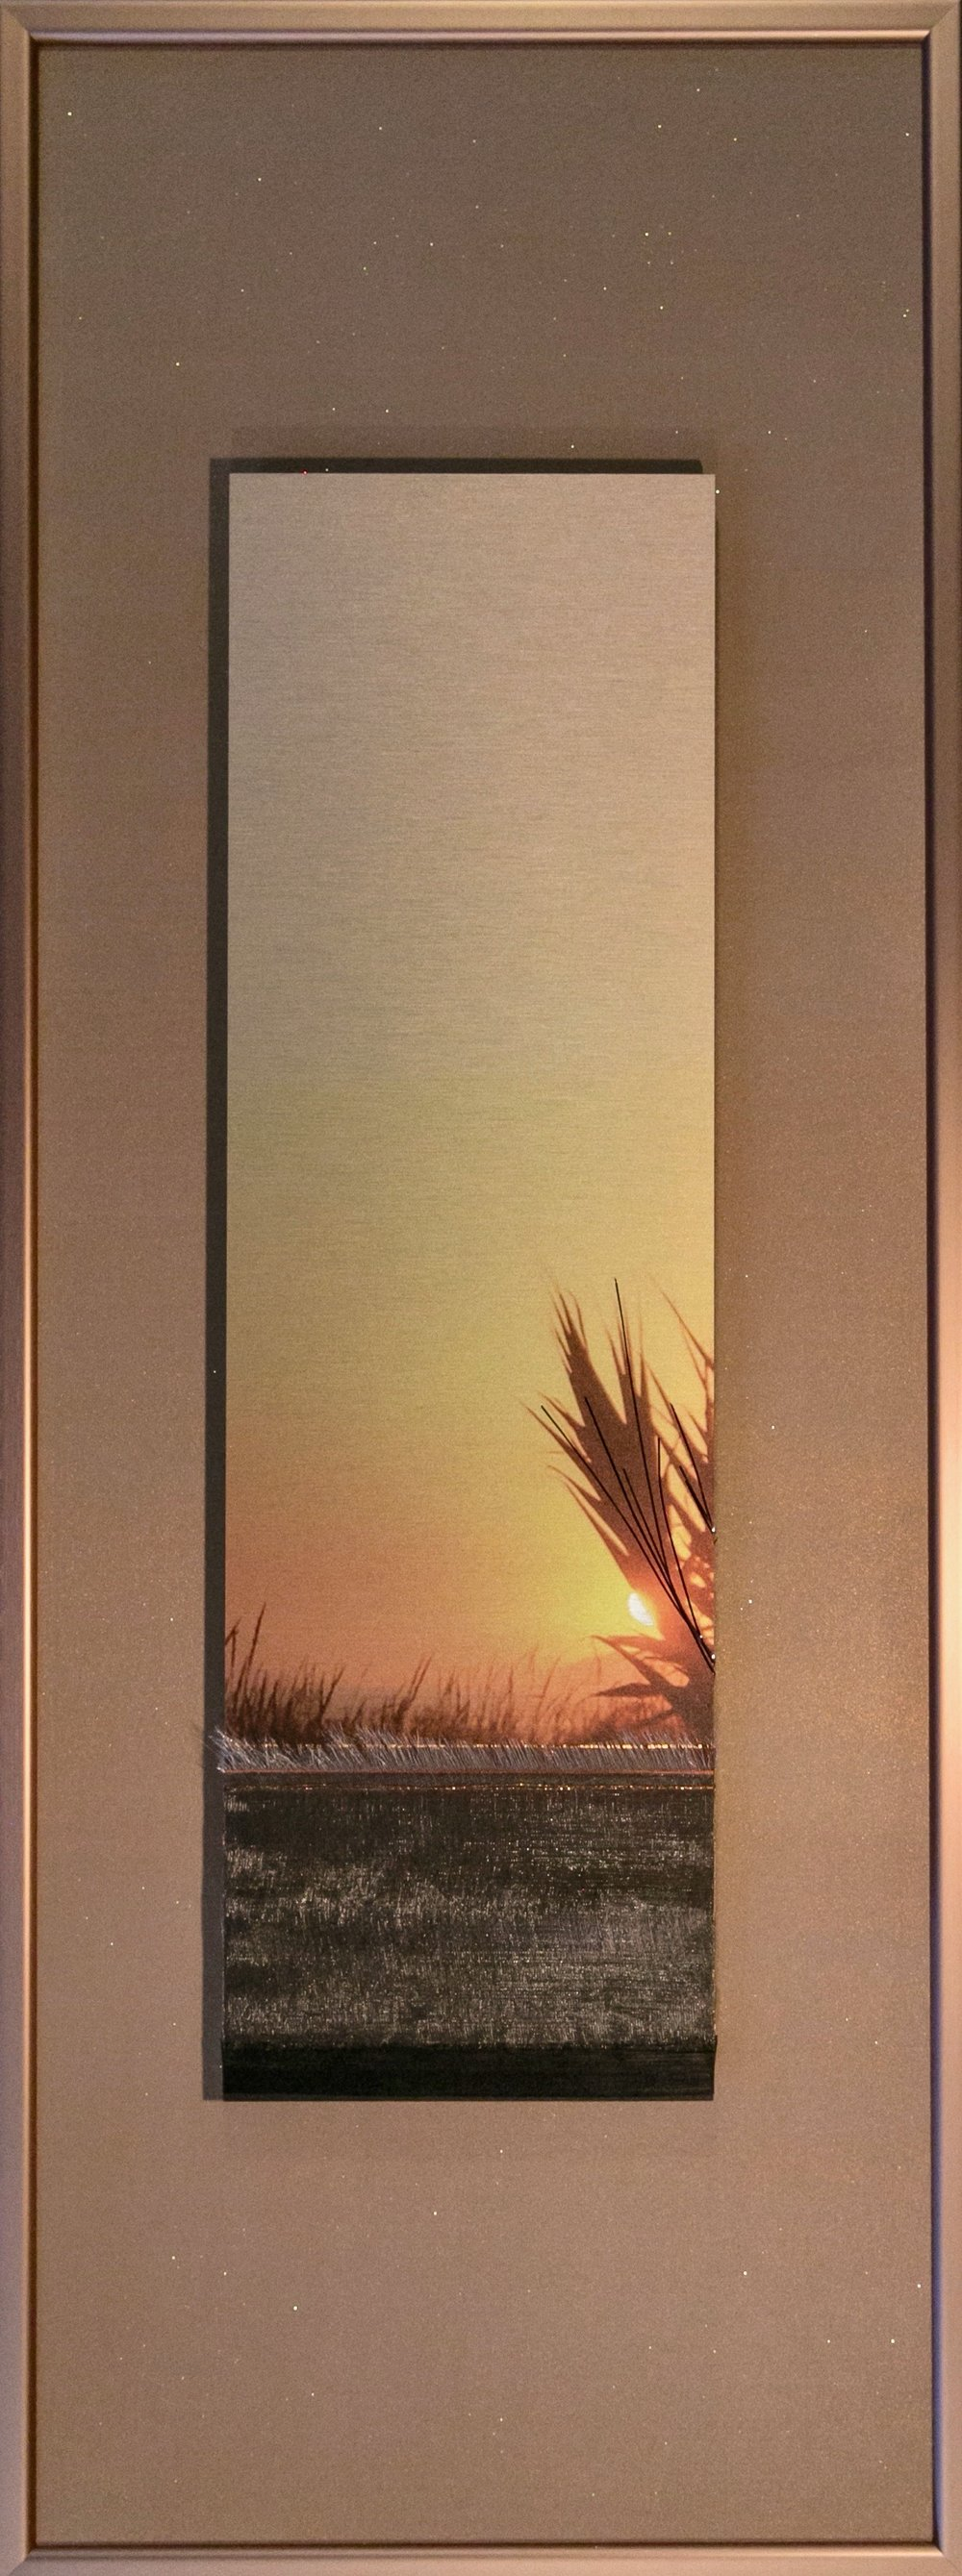 "Landscapes Series    Dawn   12"" x 32""  Brushed Metal Print with Silks  2018"